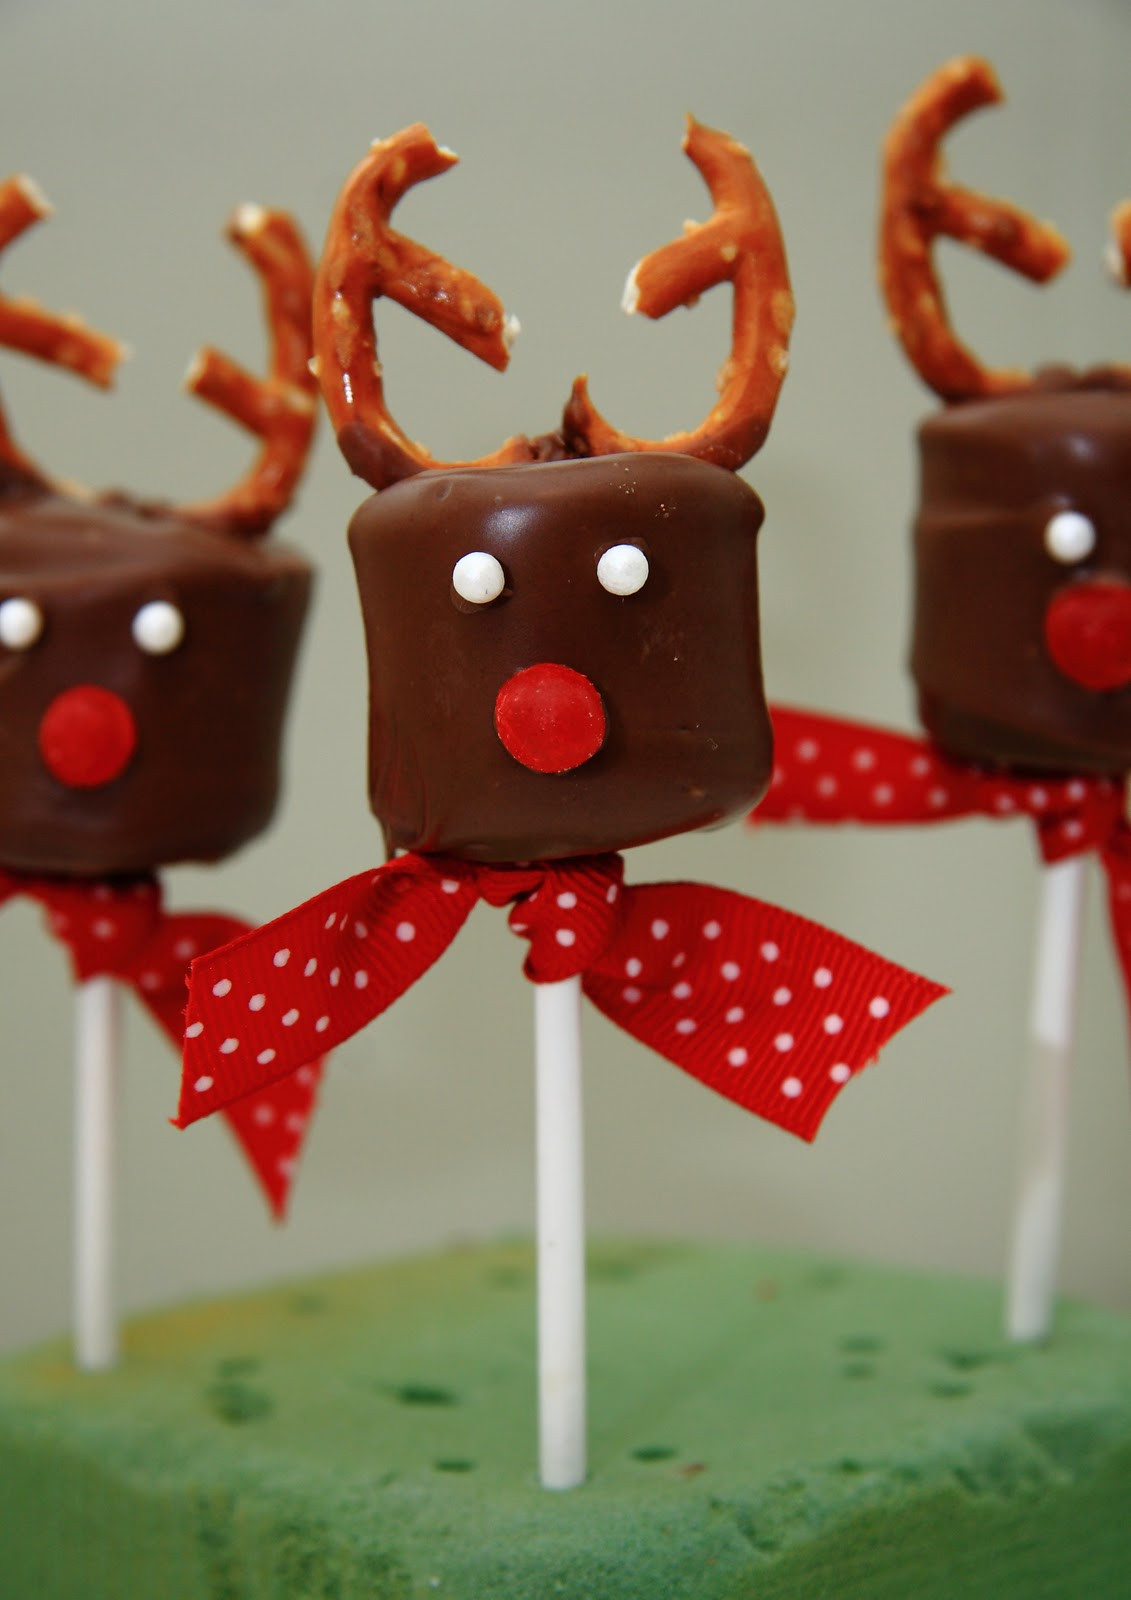 Best ideas about Ideas For Kids . Save or Pin 21 Amazing Christmas Party Ideas for Kids Now.